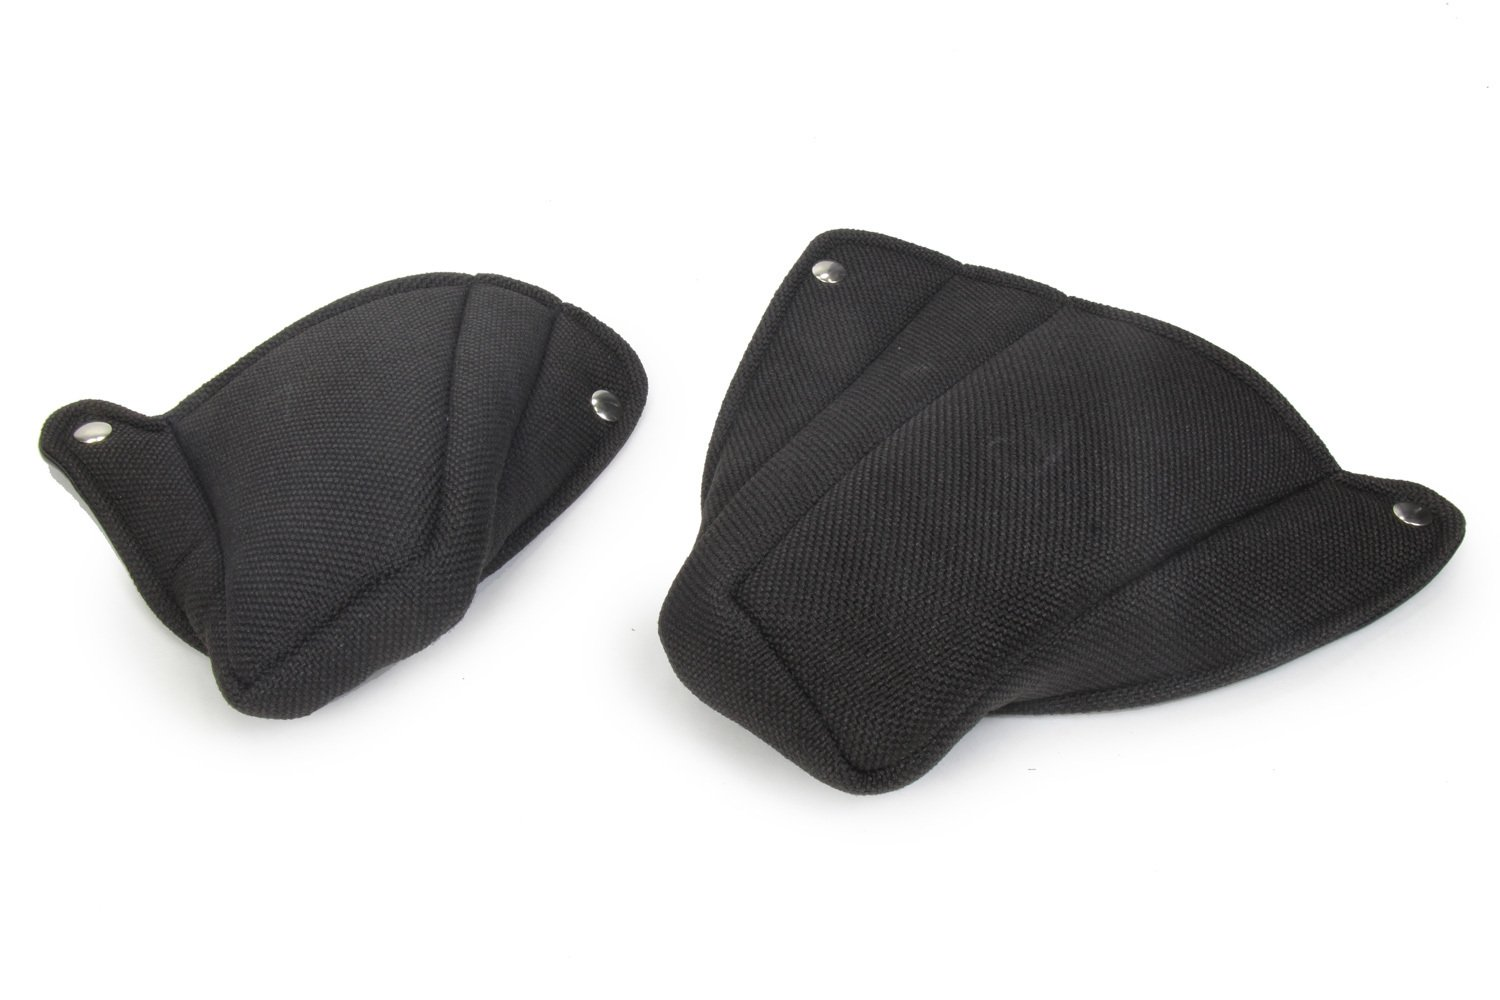 Right & Left Halo Covers for Circle Track Seats